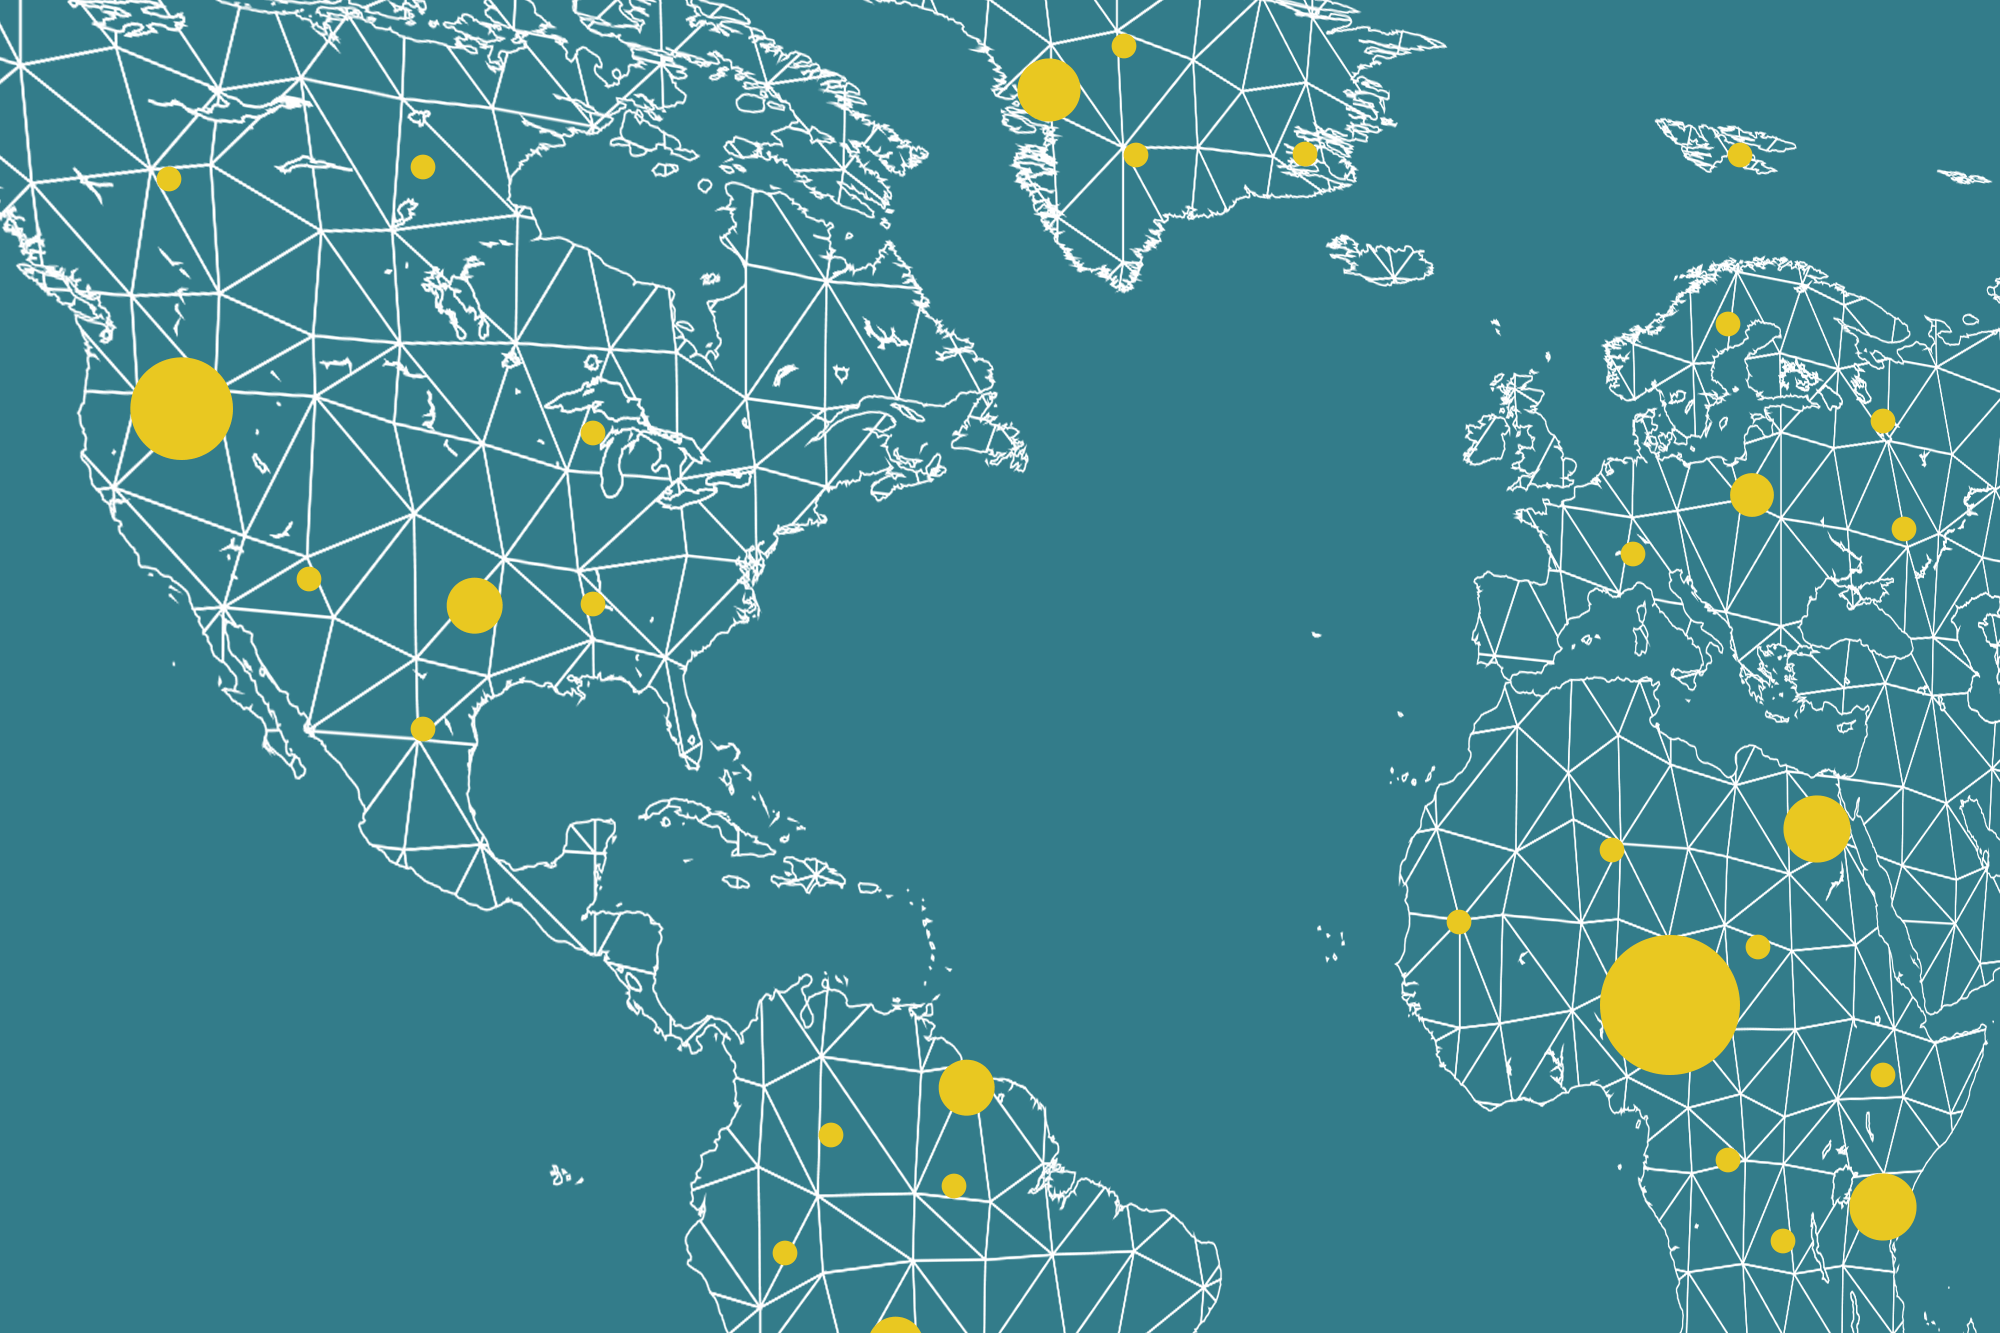 World map with varying sizes of yellow dots